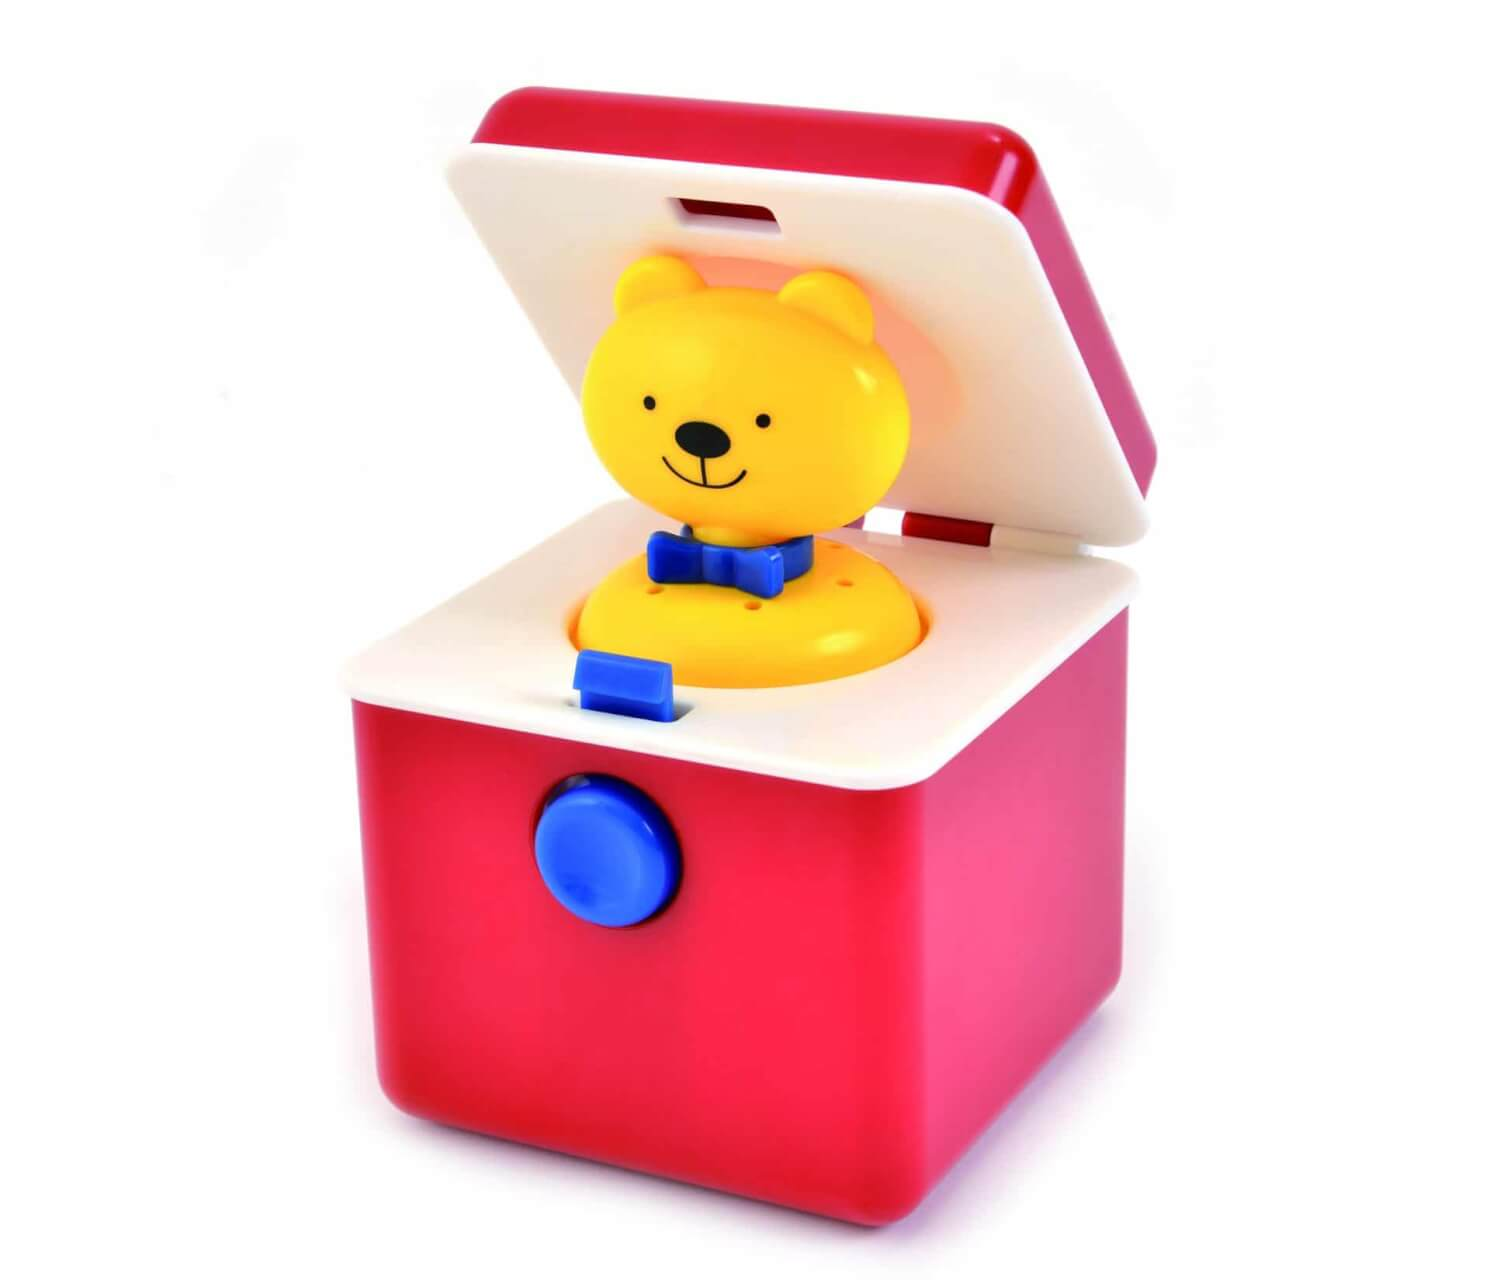 Compact Ted-in-a-Box pop up toy